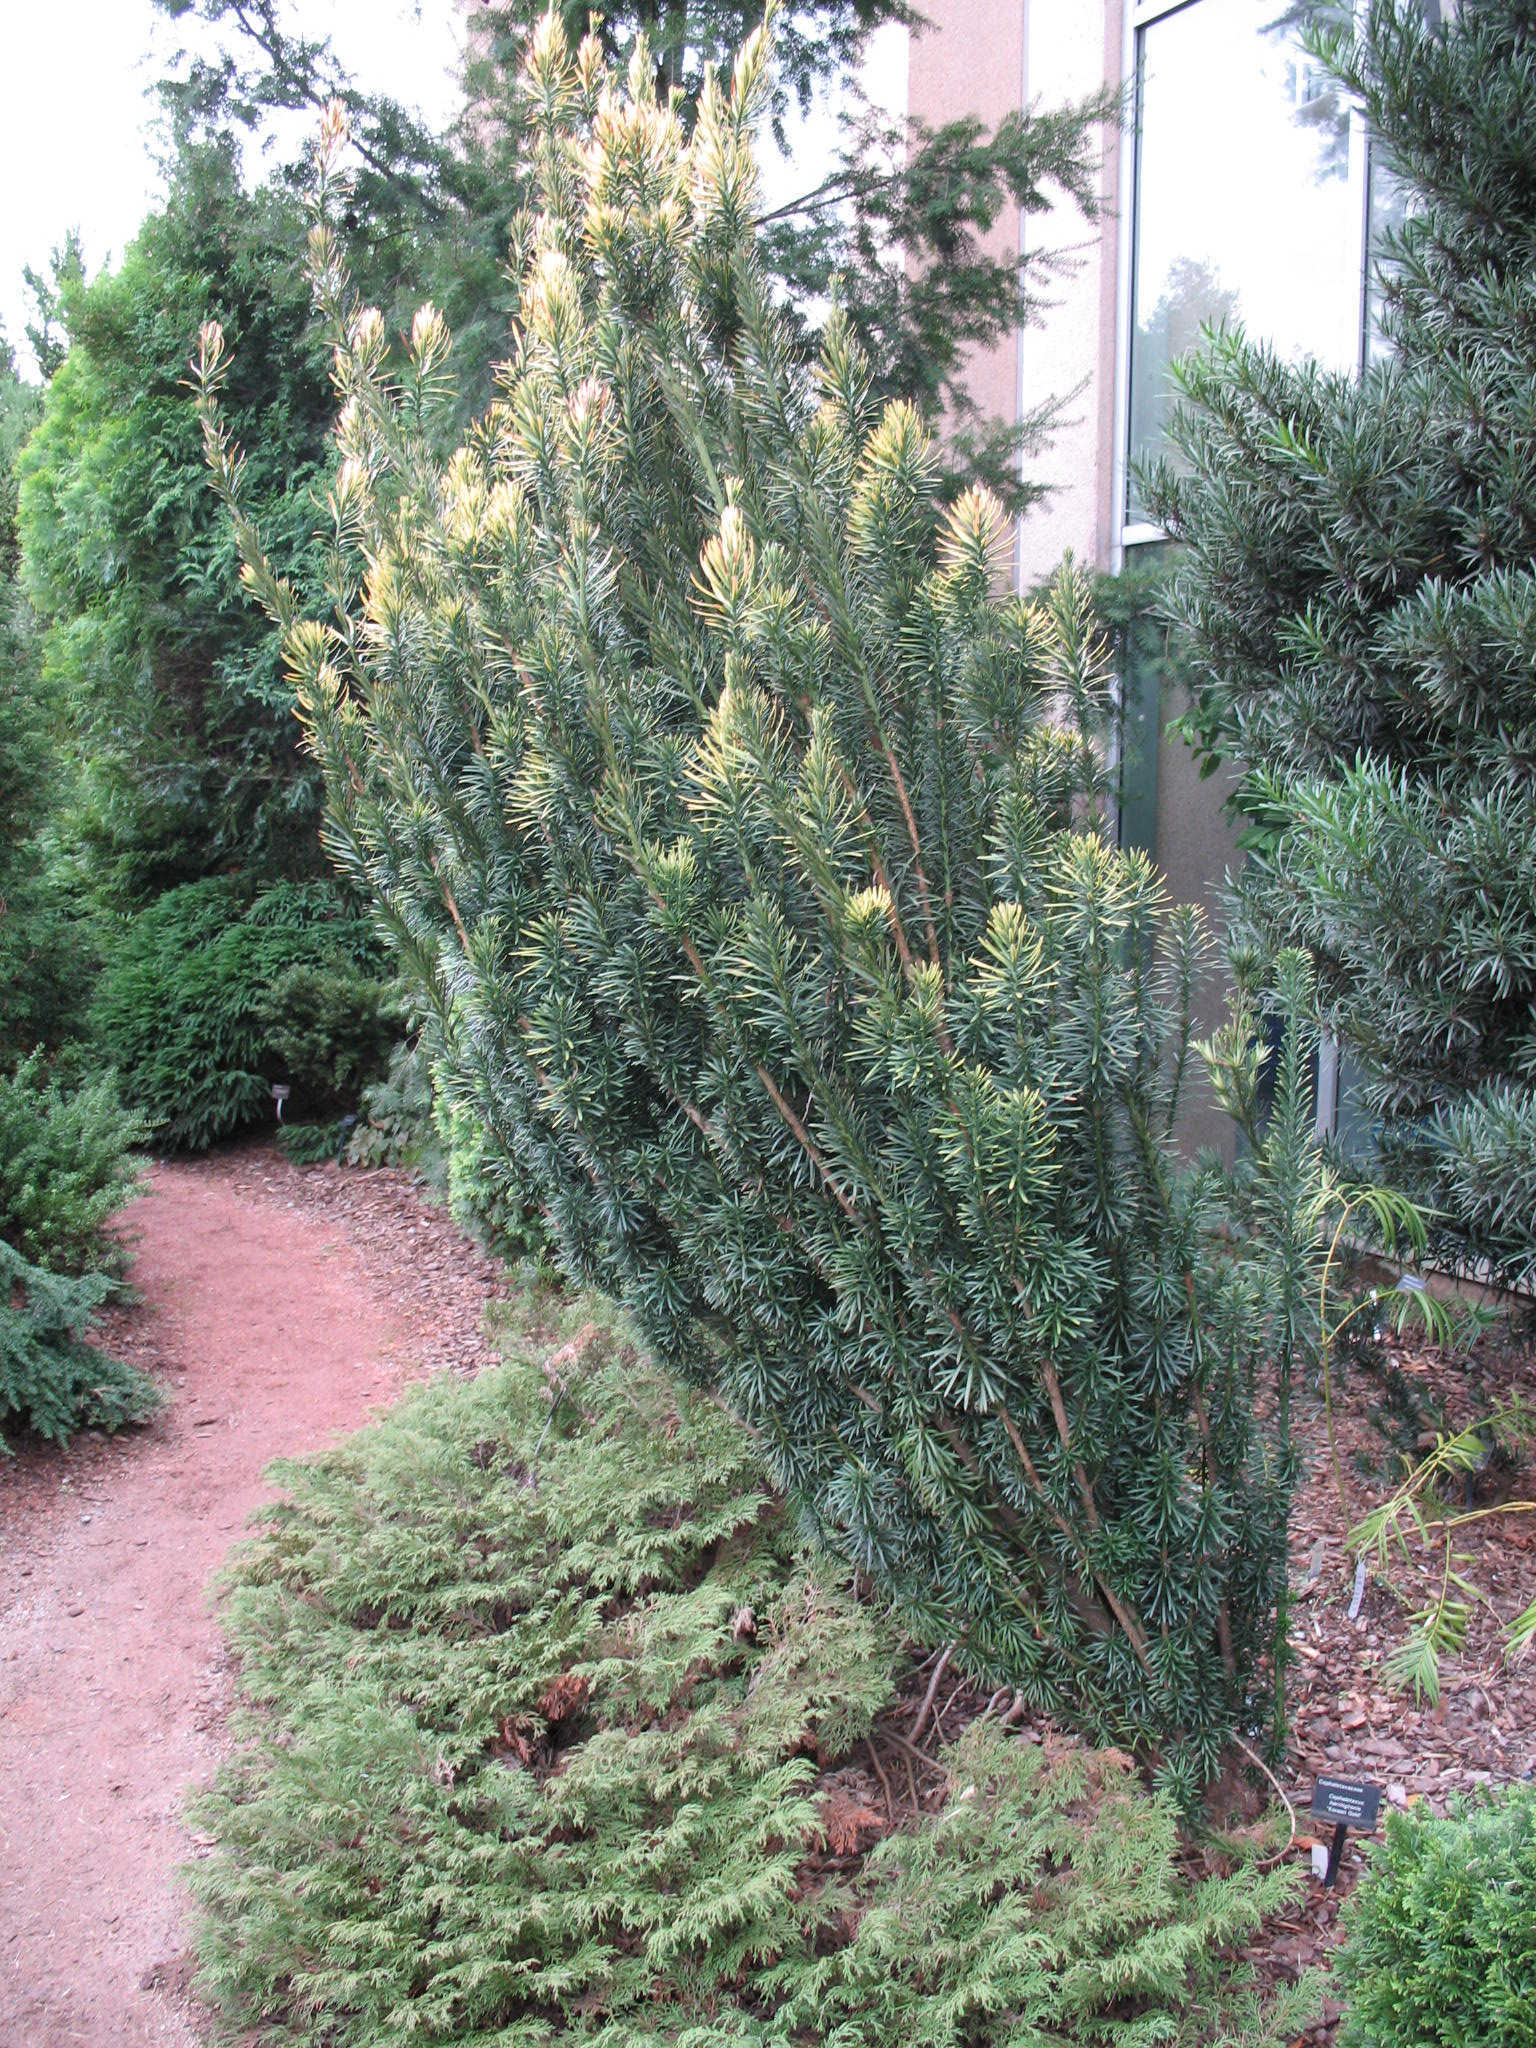 Cephalotaxus harringtonia 'Korean Gold'   / Cephalotaxus harringtonia 'Korean Gold'